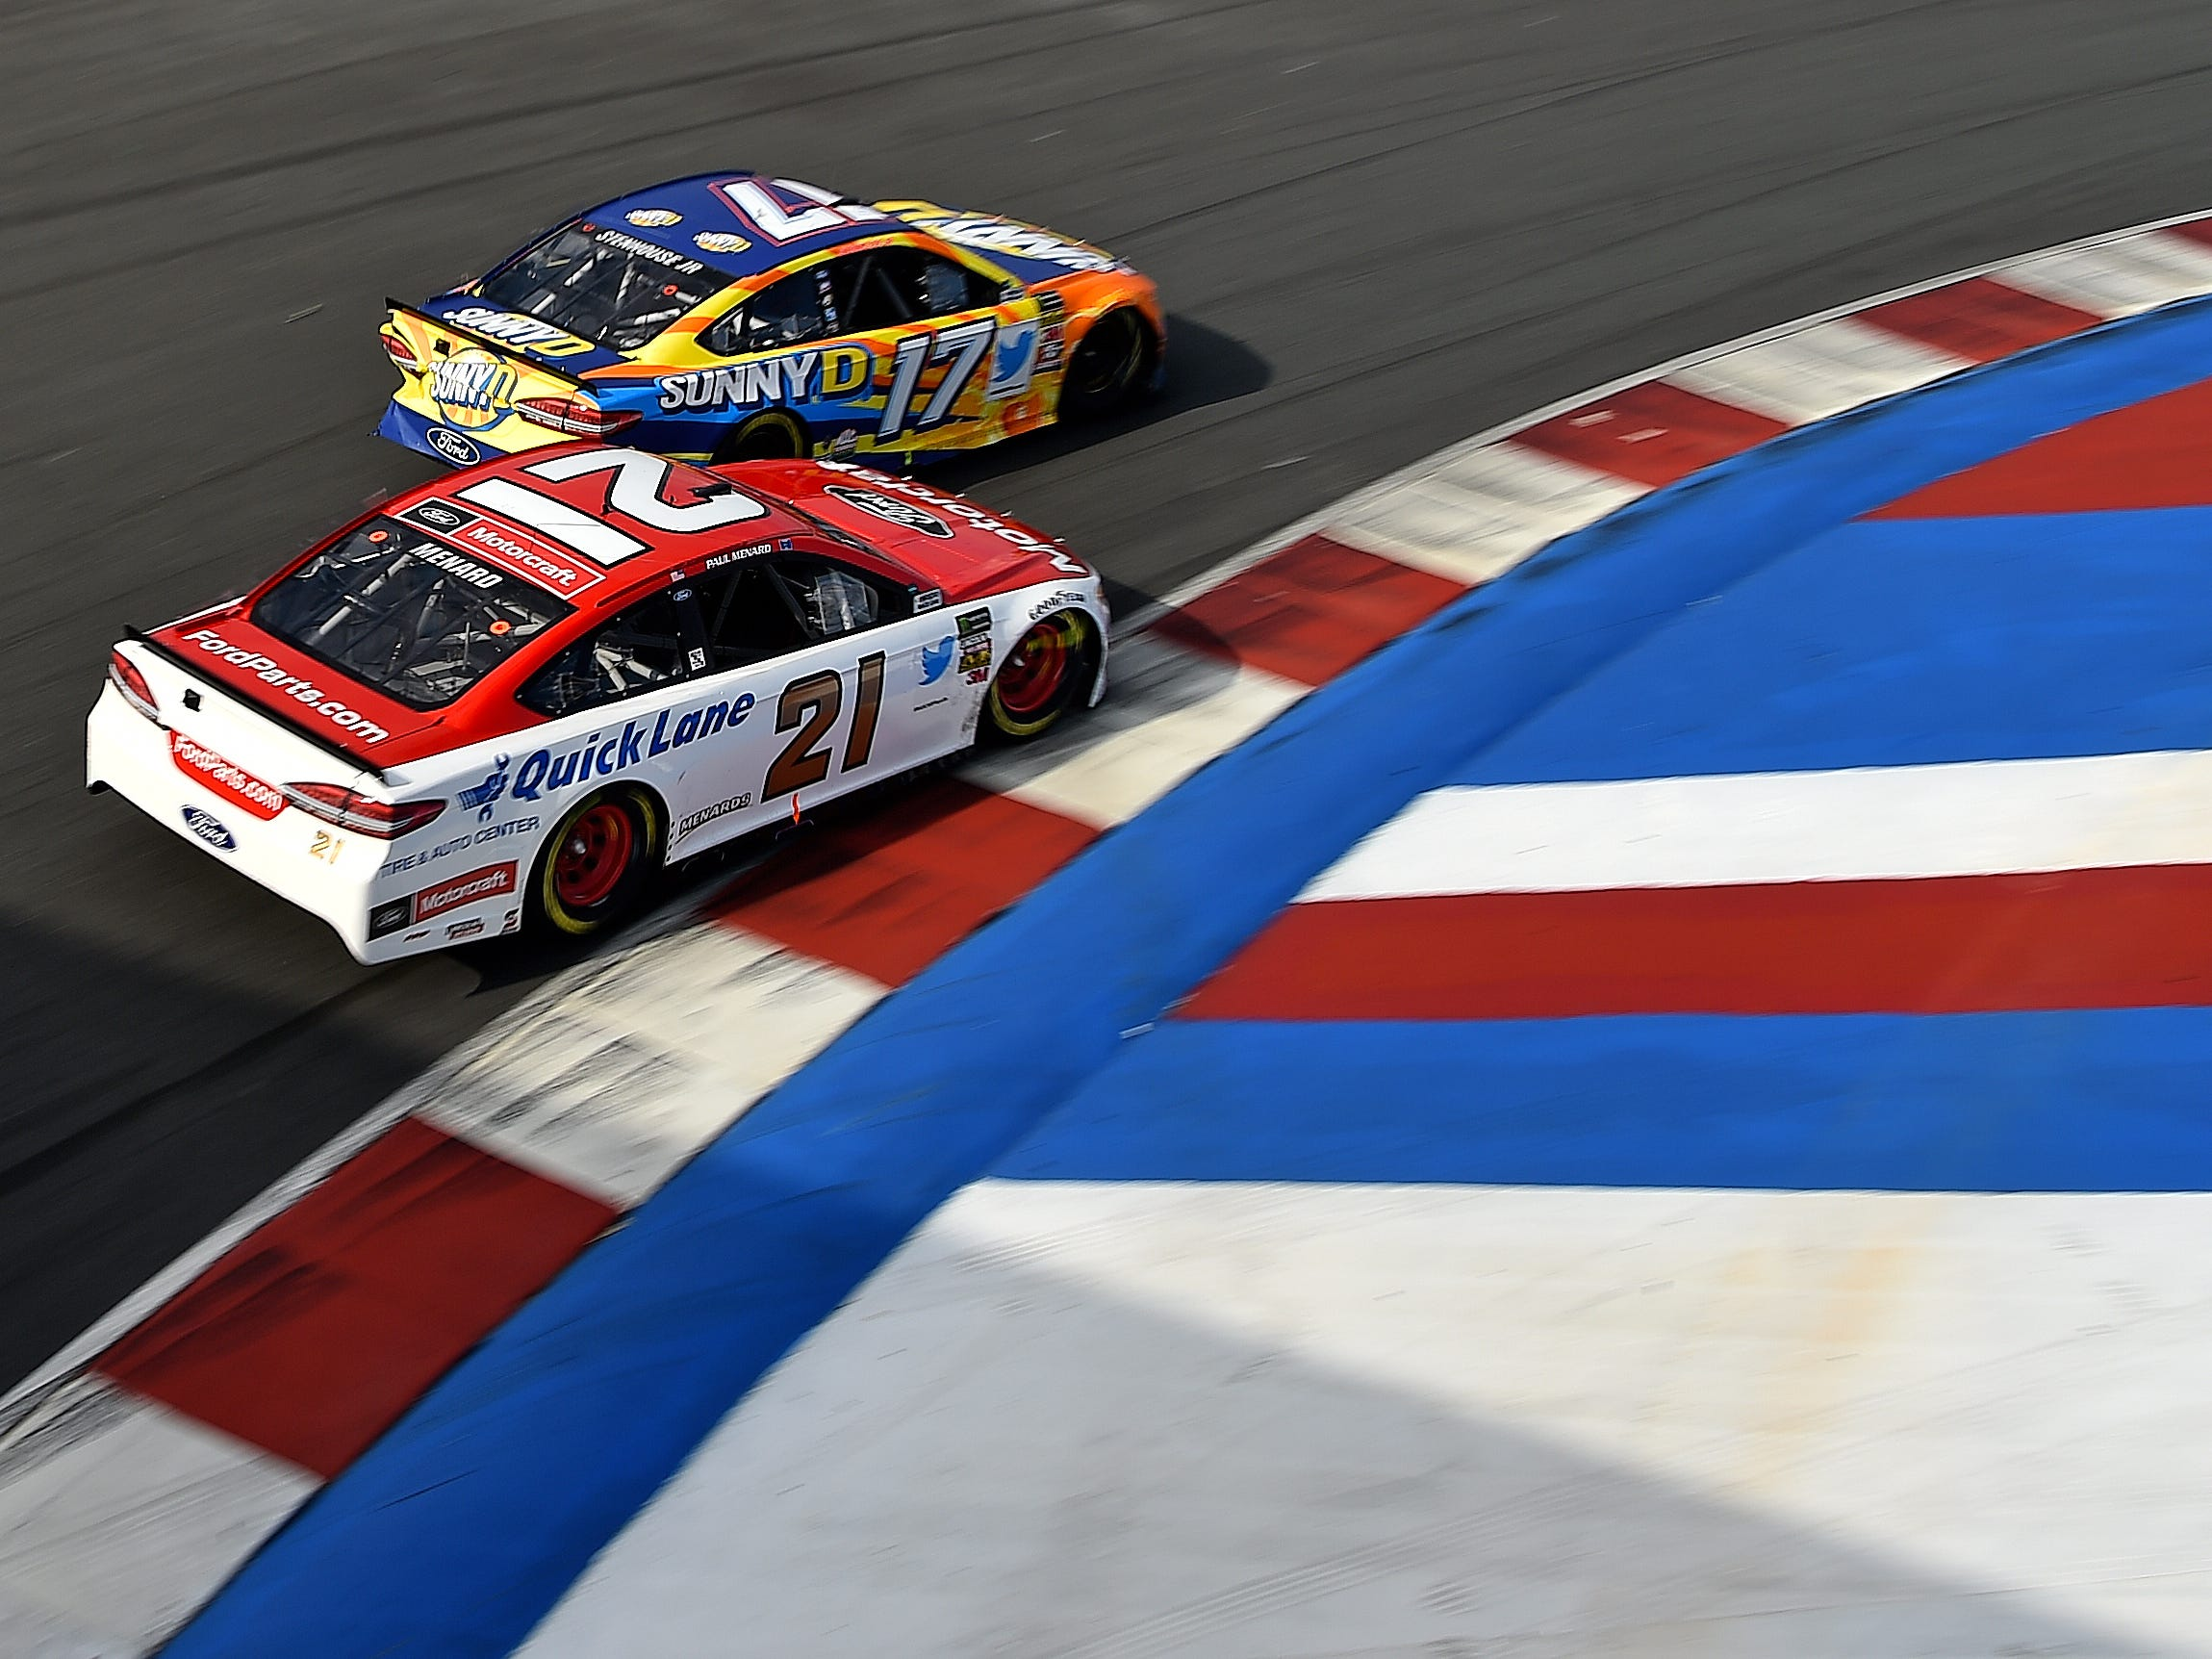 Sep 30, 2018; Concord, NC, USA; NASCAR Cup Series driver Ricky Stenhouse Jr. (17) leads Paul Menard (21) during the Bank of America Roval 400 at Charlotte Motor Speedway Road Course. Mandatory Credit: Jasen Vinlove-USA TODAY Sports